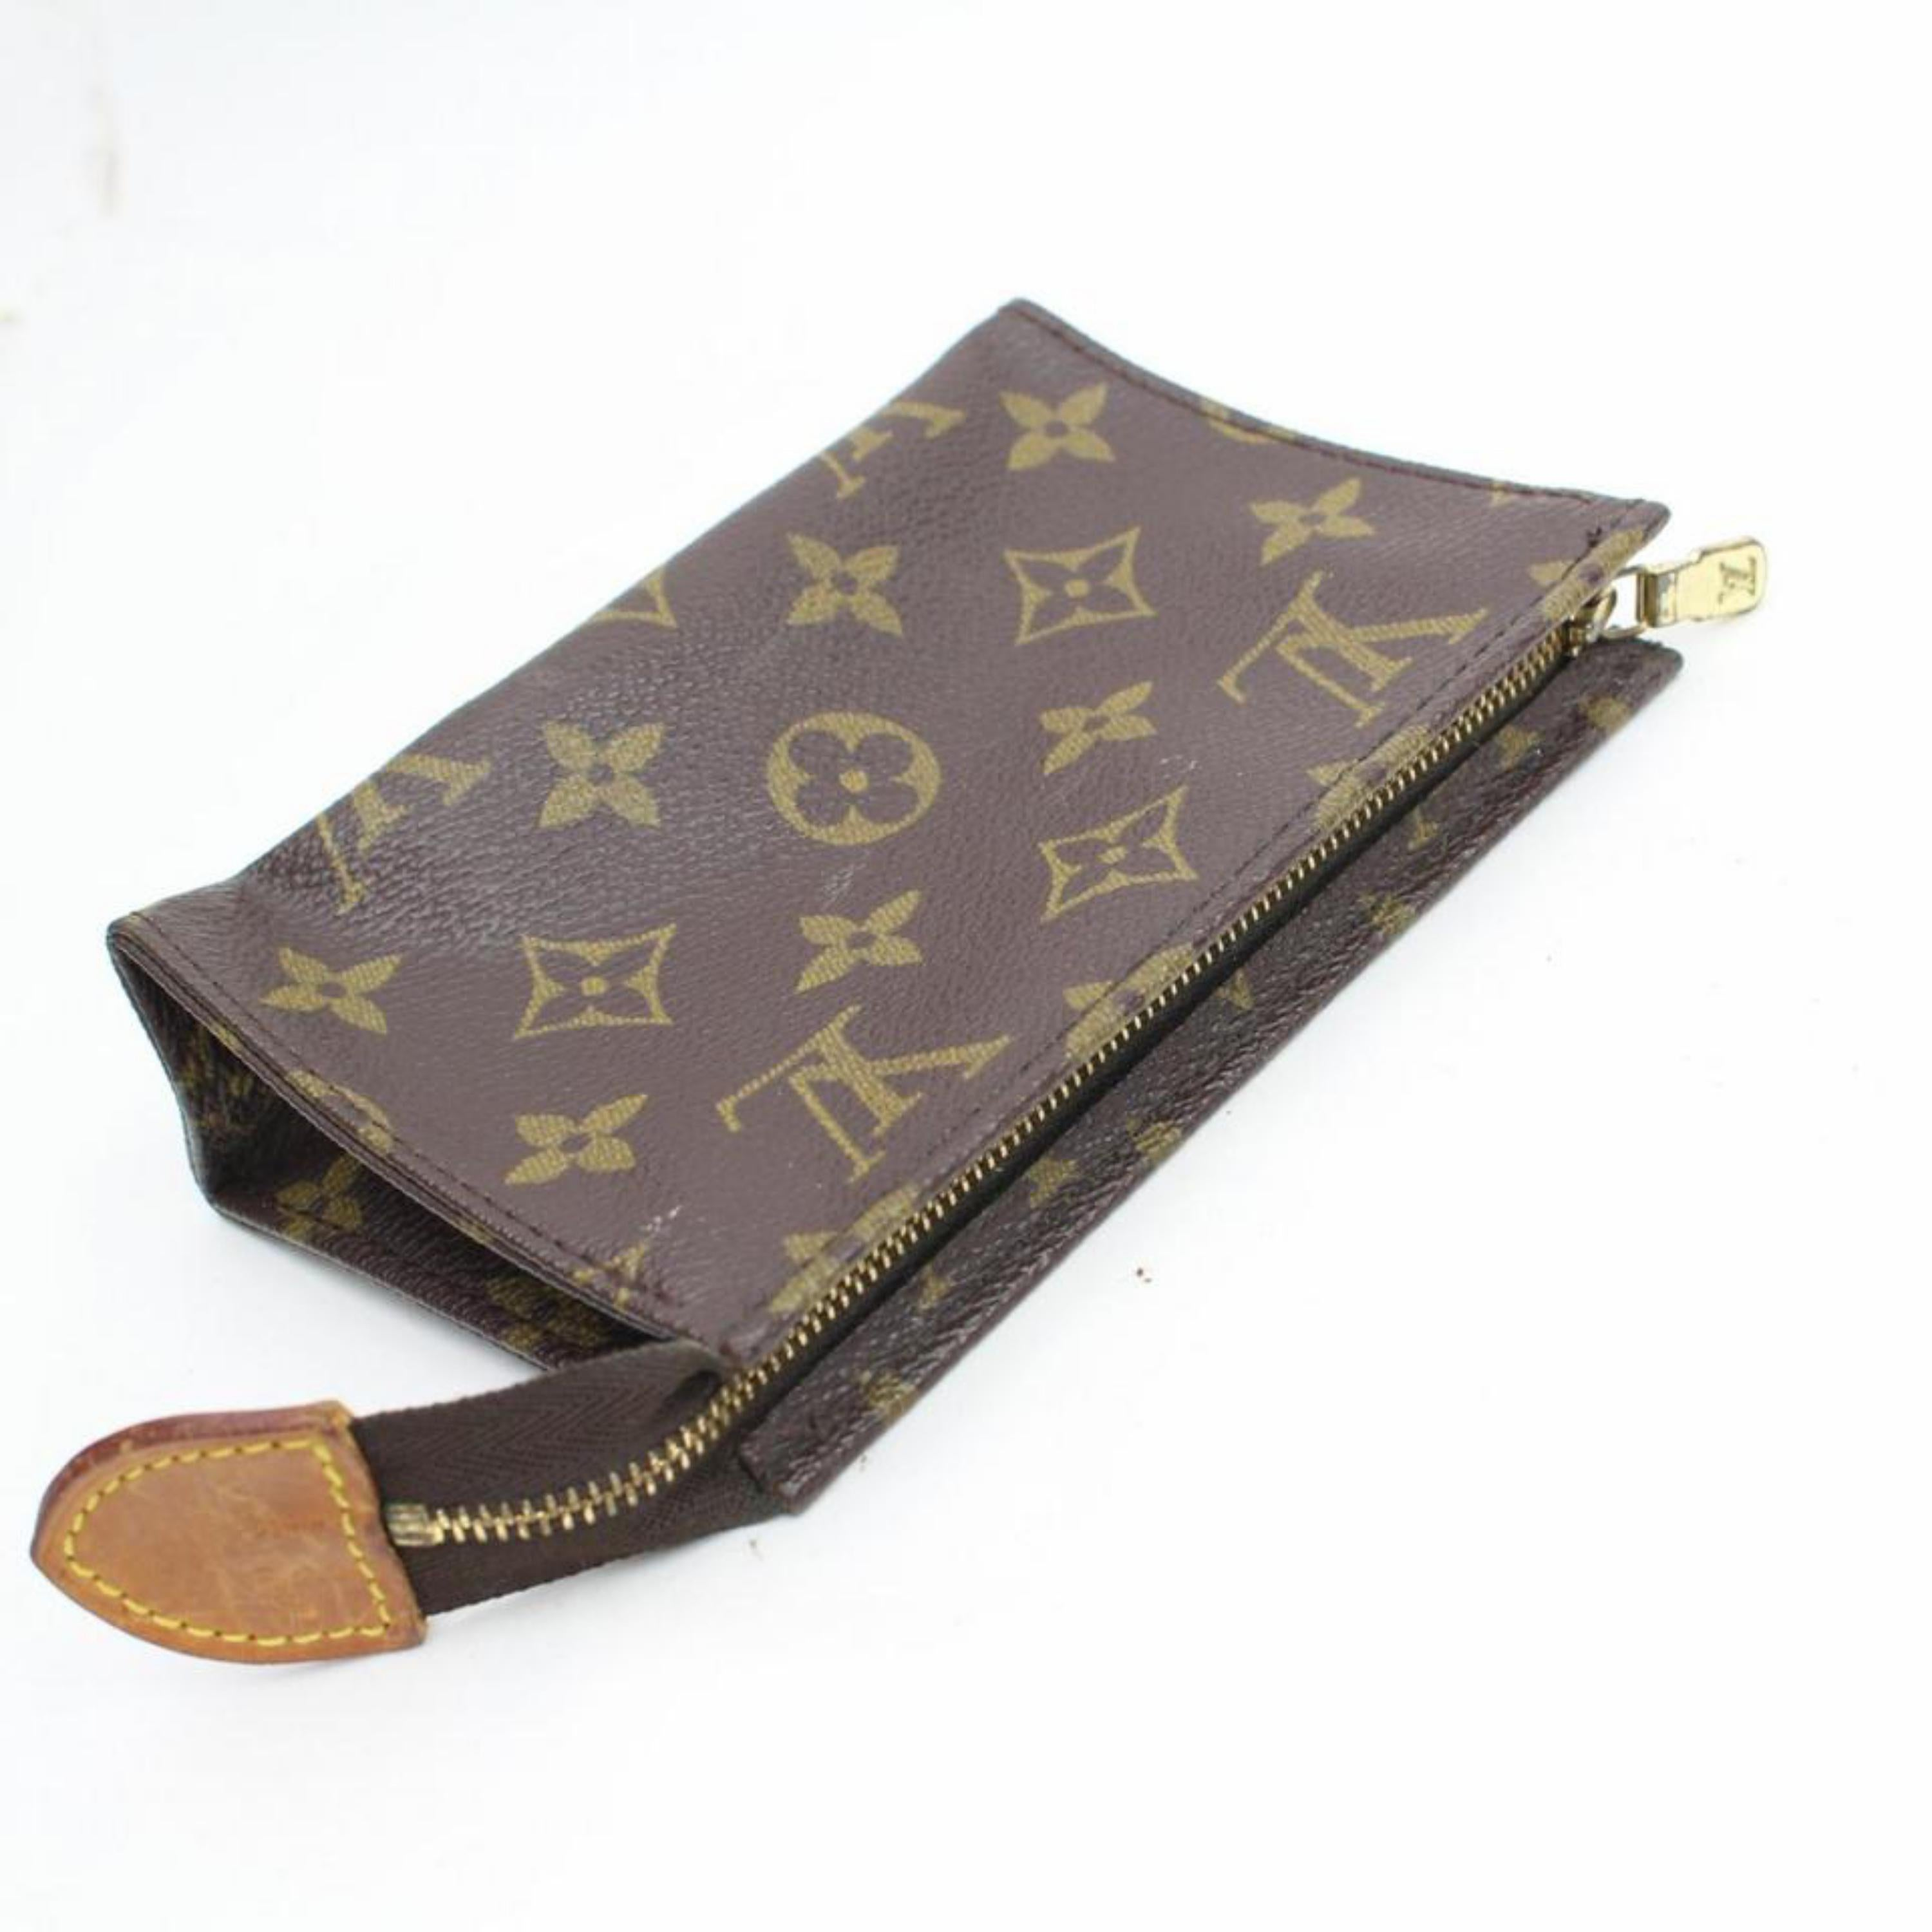 12c902cd9c71 Louis Vuitton Brown Poche Monogram Toiletry Pouch 15 Toilette 868086  Cosmetic Ba For Sale at 1stdibs